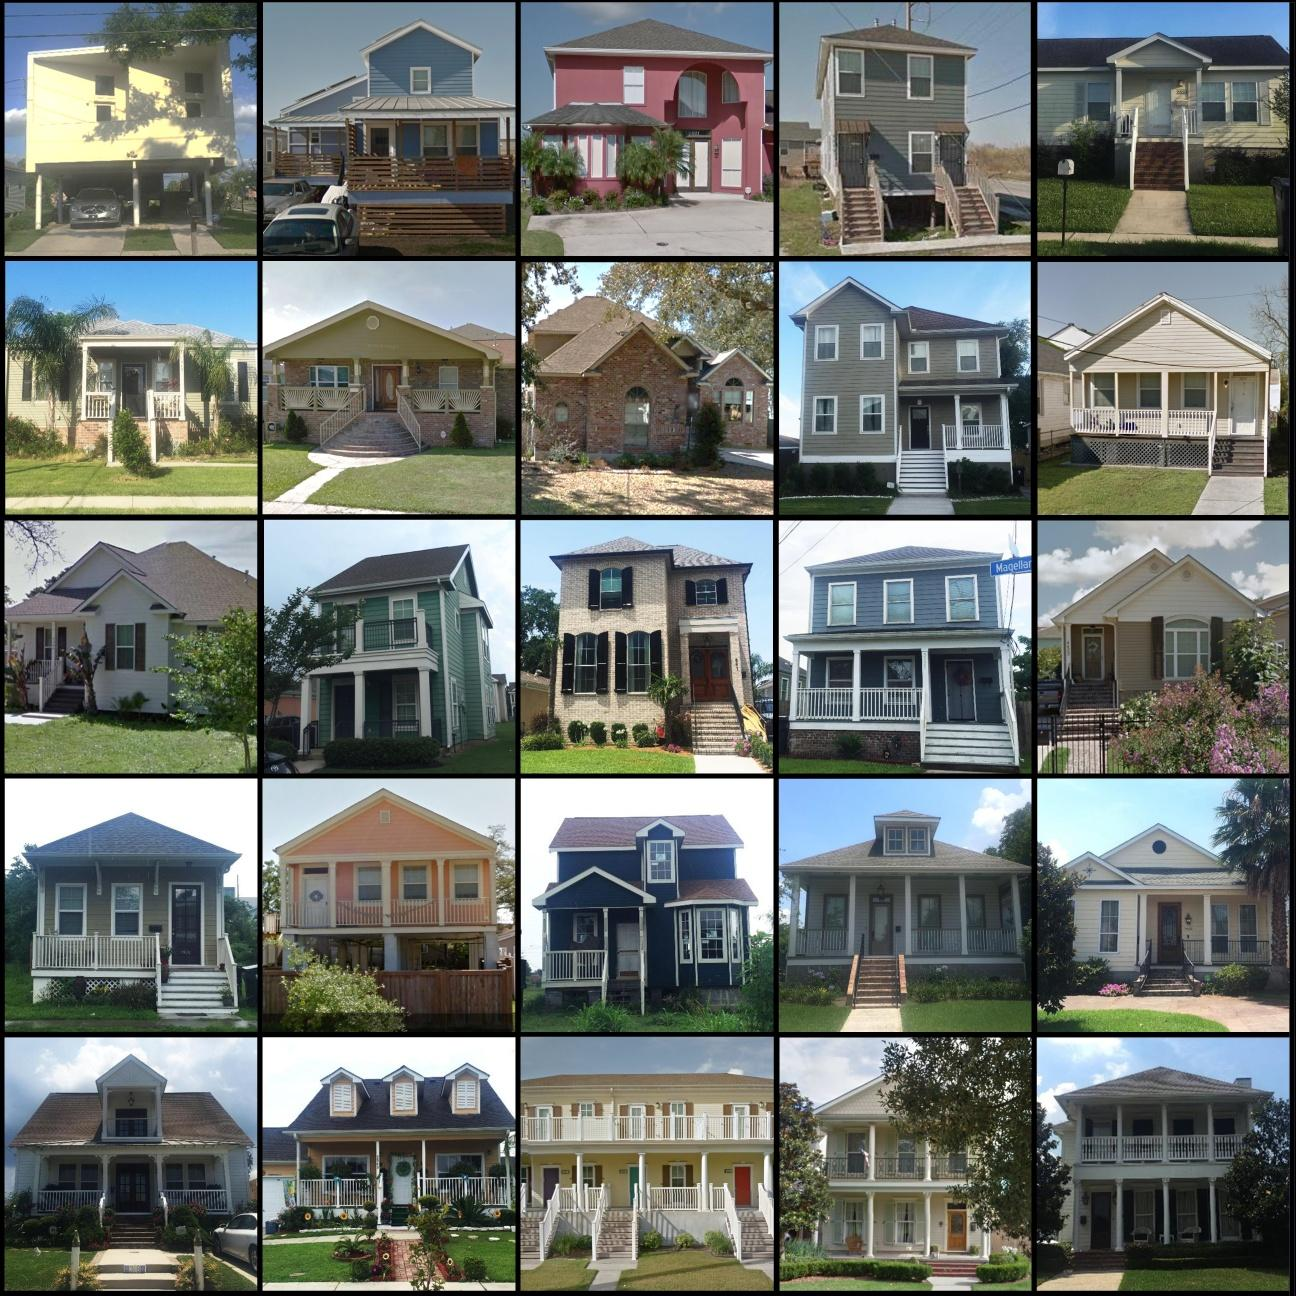 Examples Of Homes Built After Hurricane Katrina Including Modern And Historical Revival Styles When